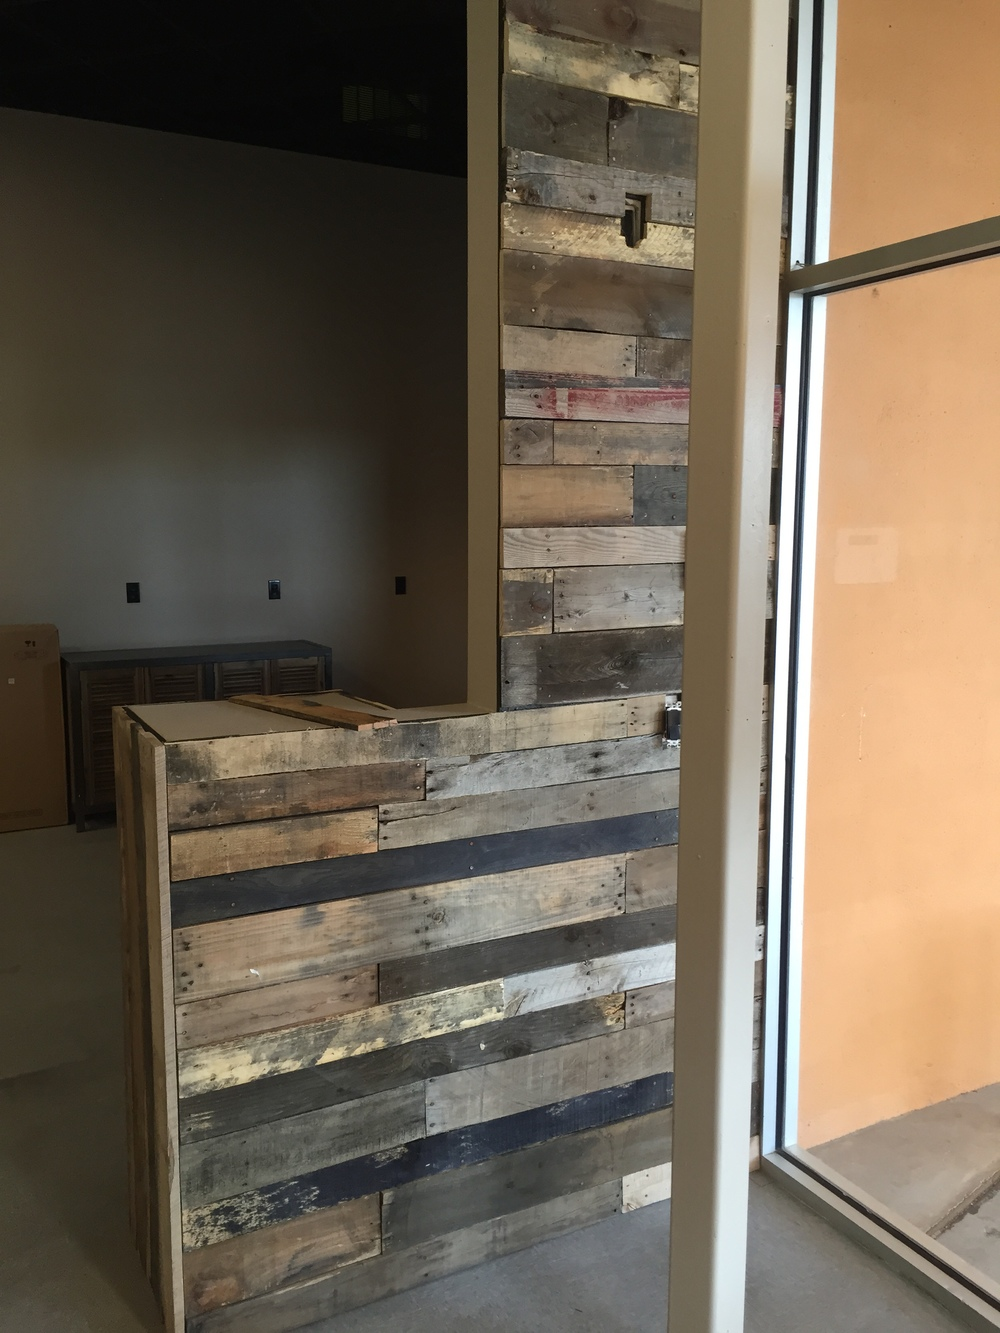 Finished up the pallet wall in the entry way.